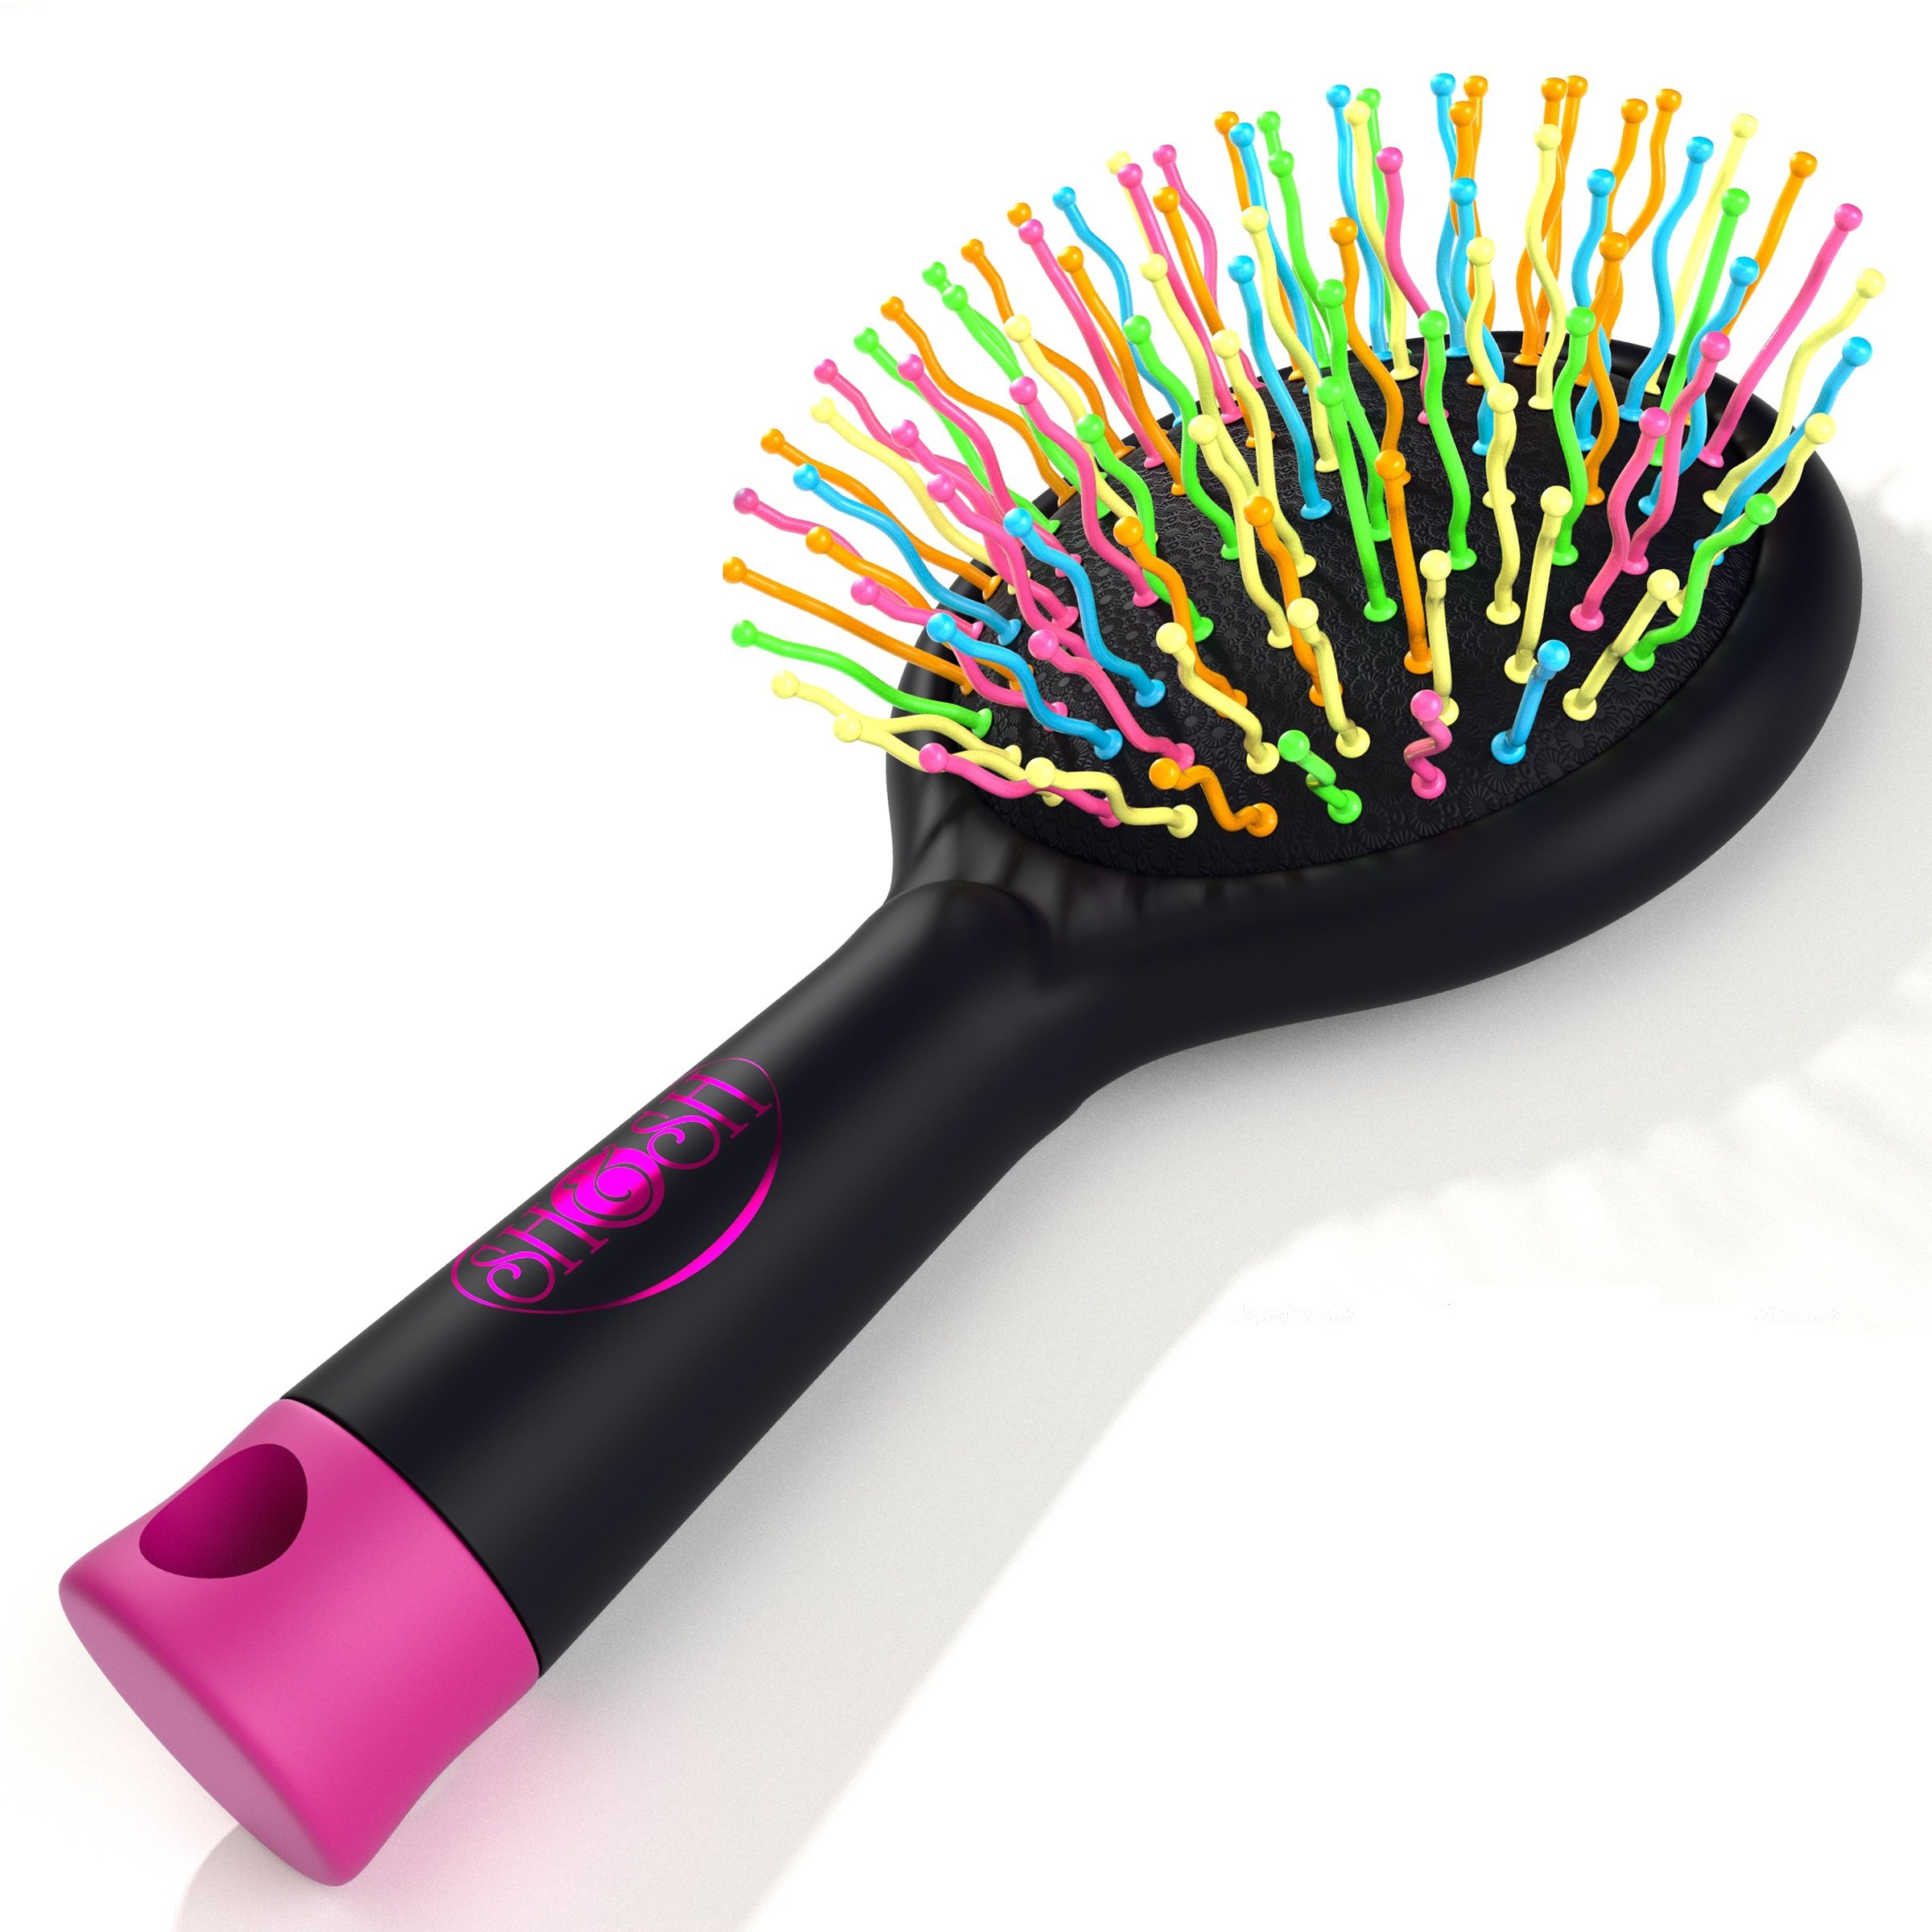 Detangling Brush with Mirror- No Tangle & Pain- Anti Static Soft Bristle- Massaging & Straightening Detangler- Rubberized Grip- Cool/ Cute Colors- Wet & Dry Detangle Comb- For All Hair Types (Black)